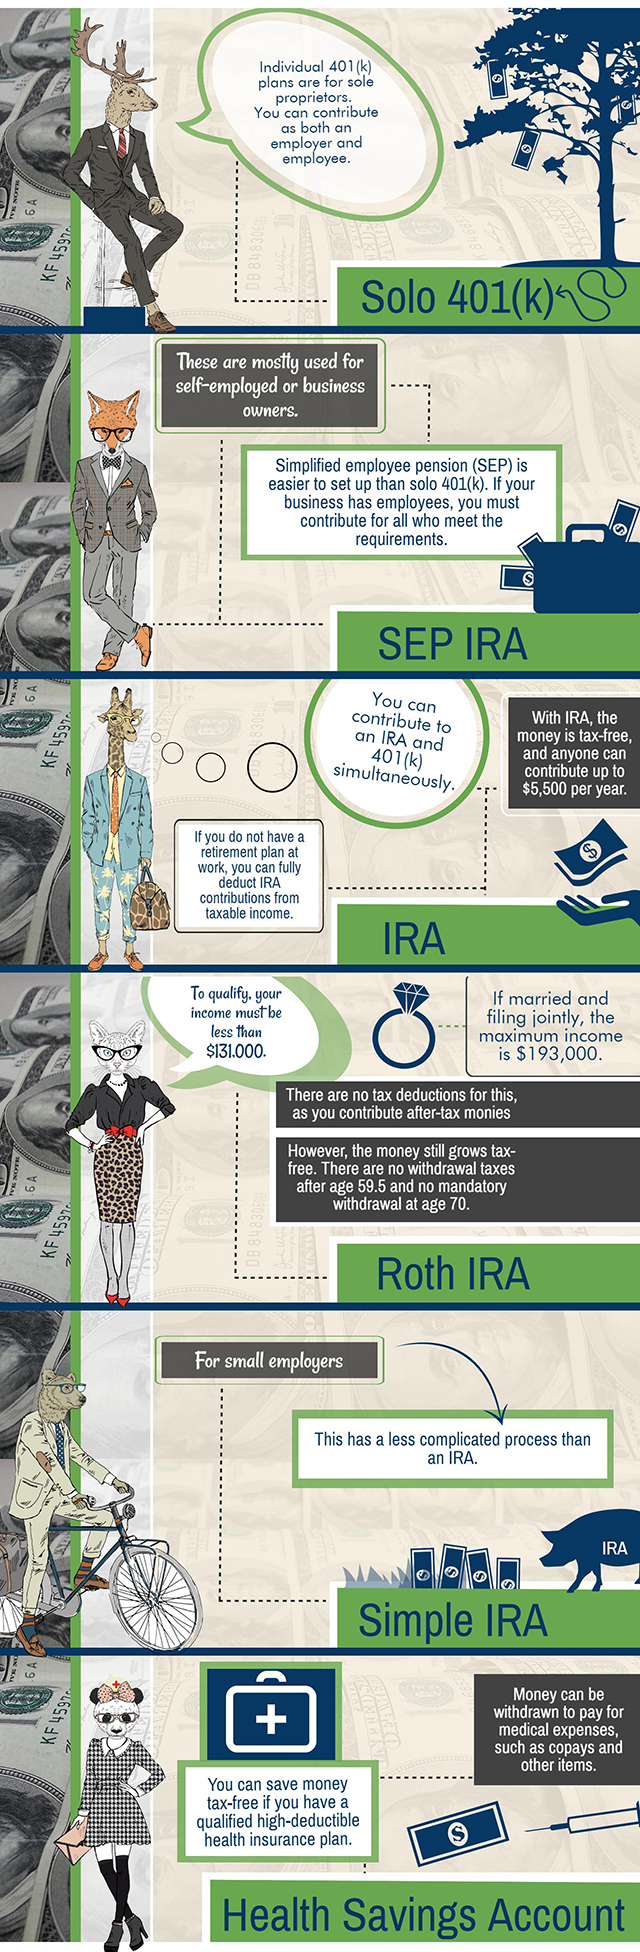 finwell-what-age-should-you-start-saving-for-retirement-infographic